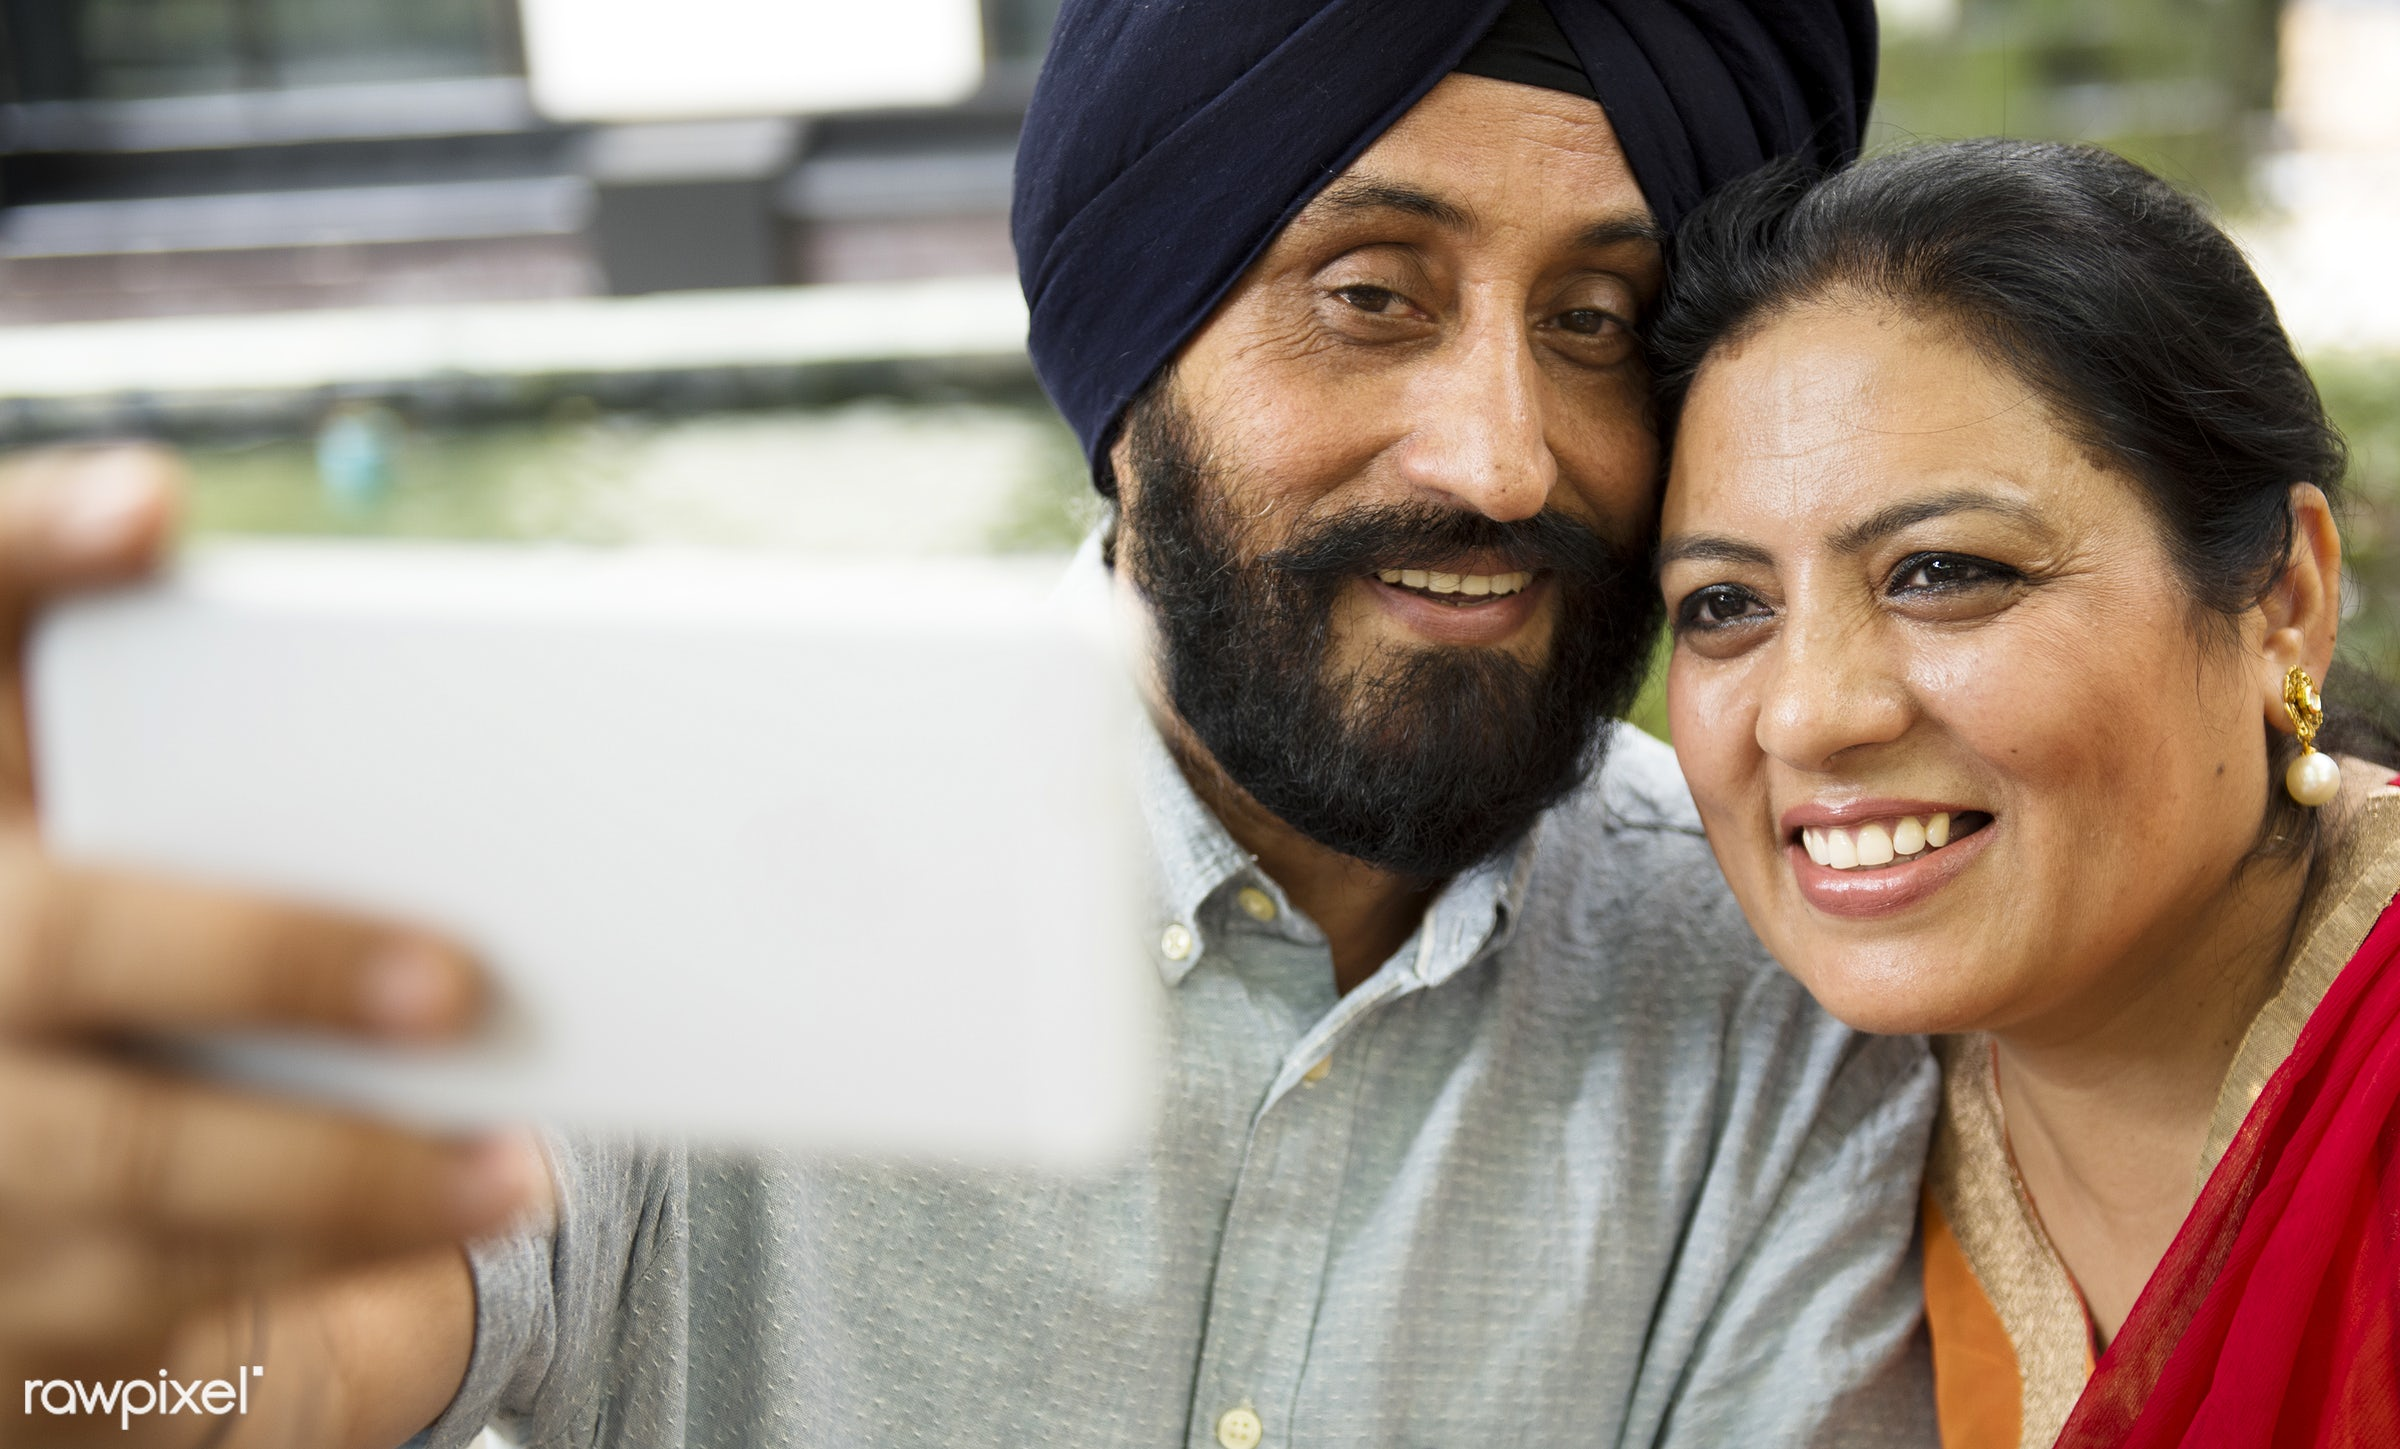 Loving senior Indian couple - activity, adult, asian, bonding, care, casual, cheerful, couple, day, device, digital,...